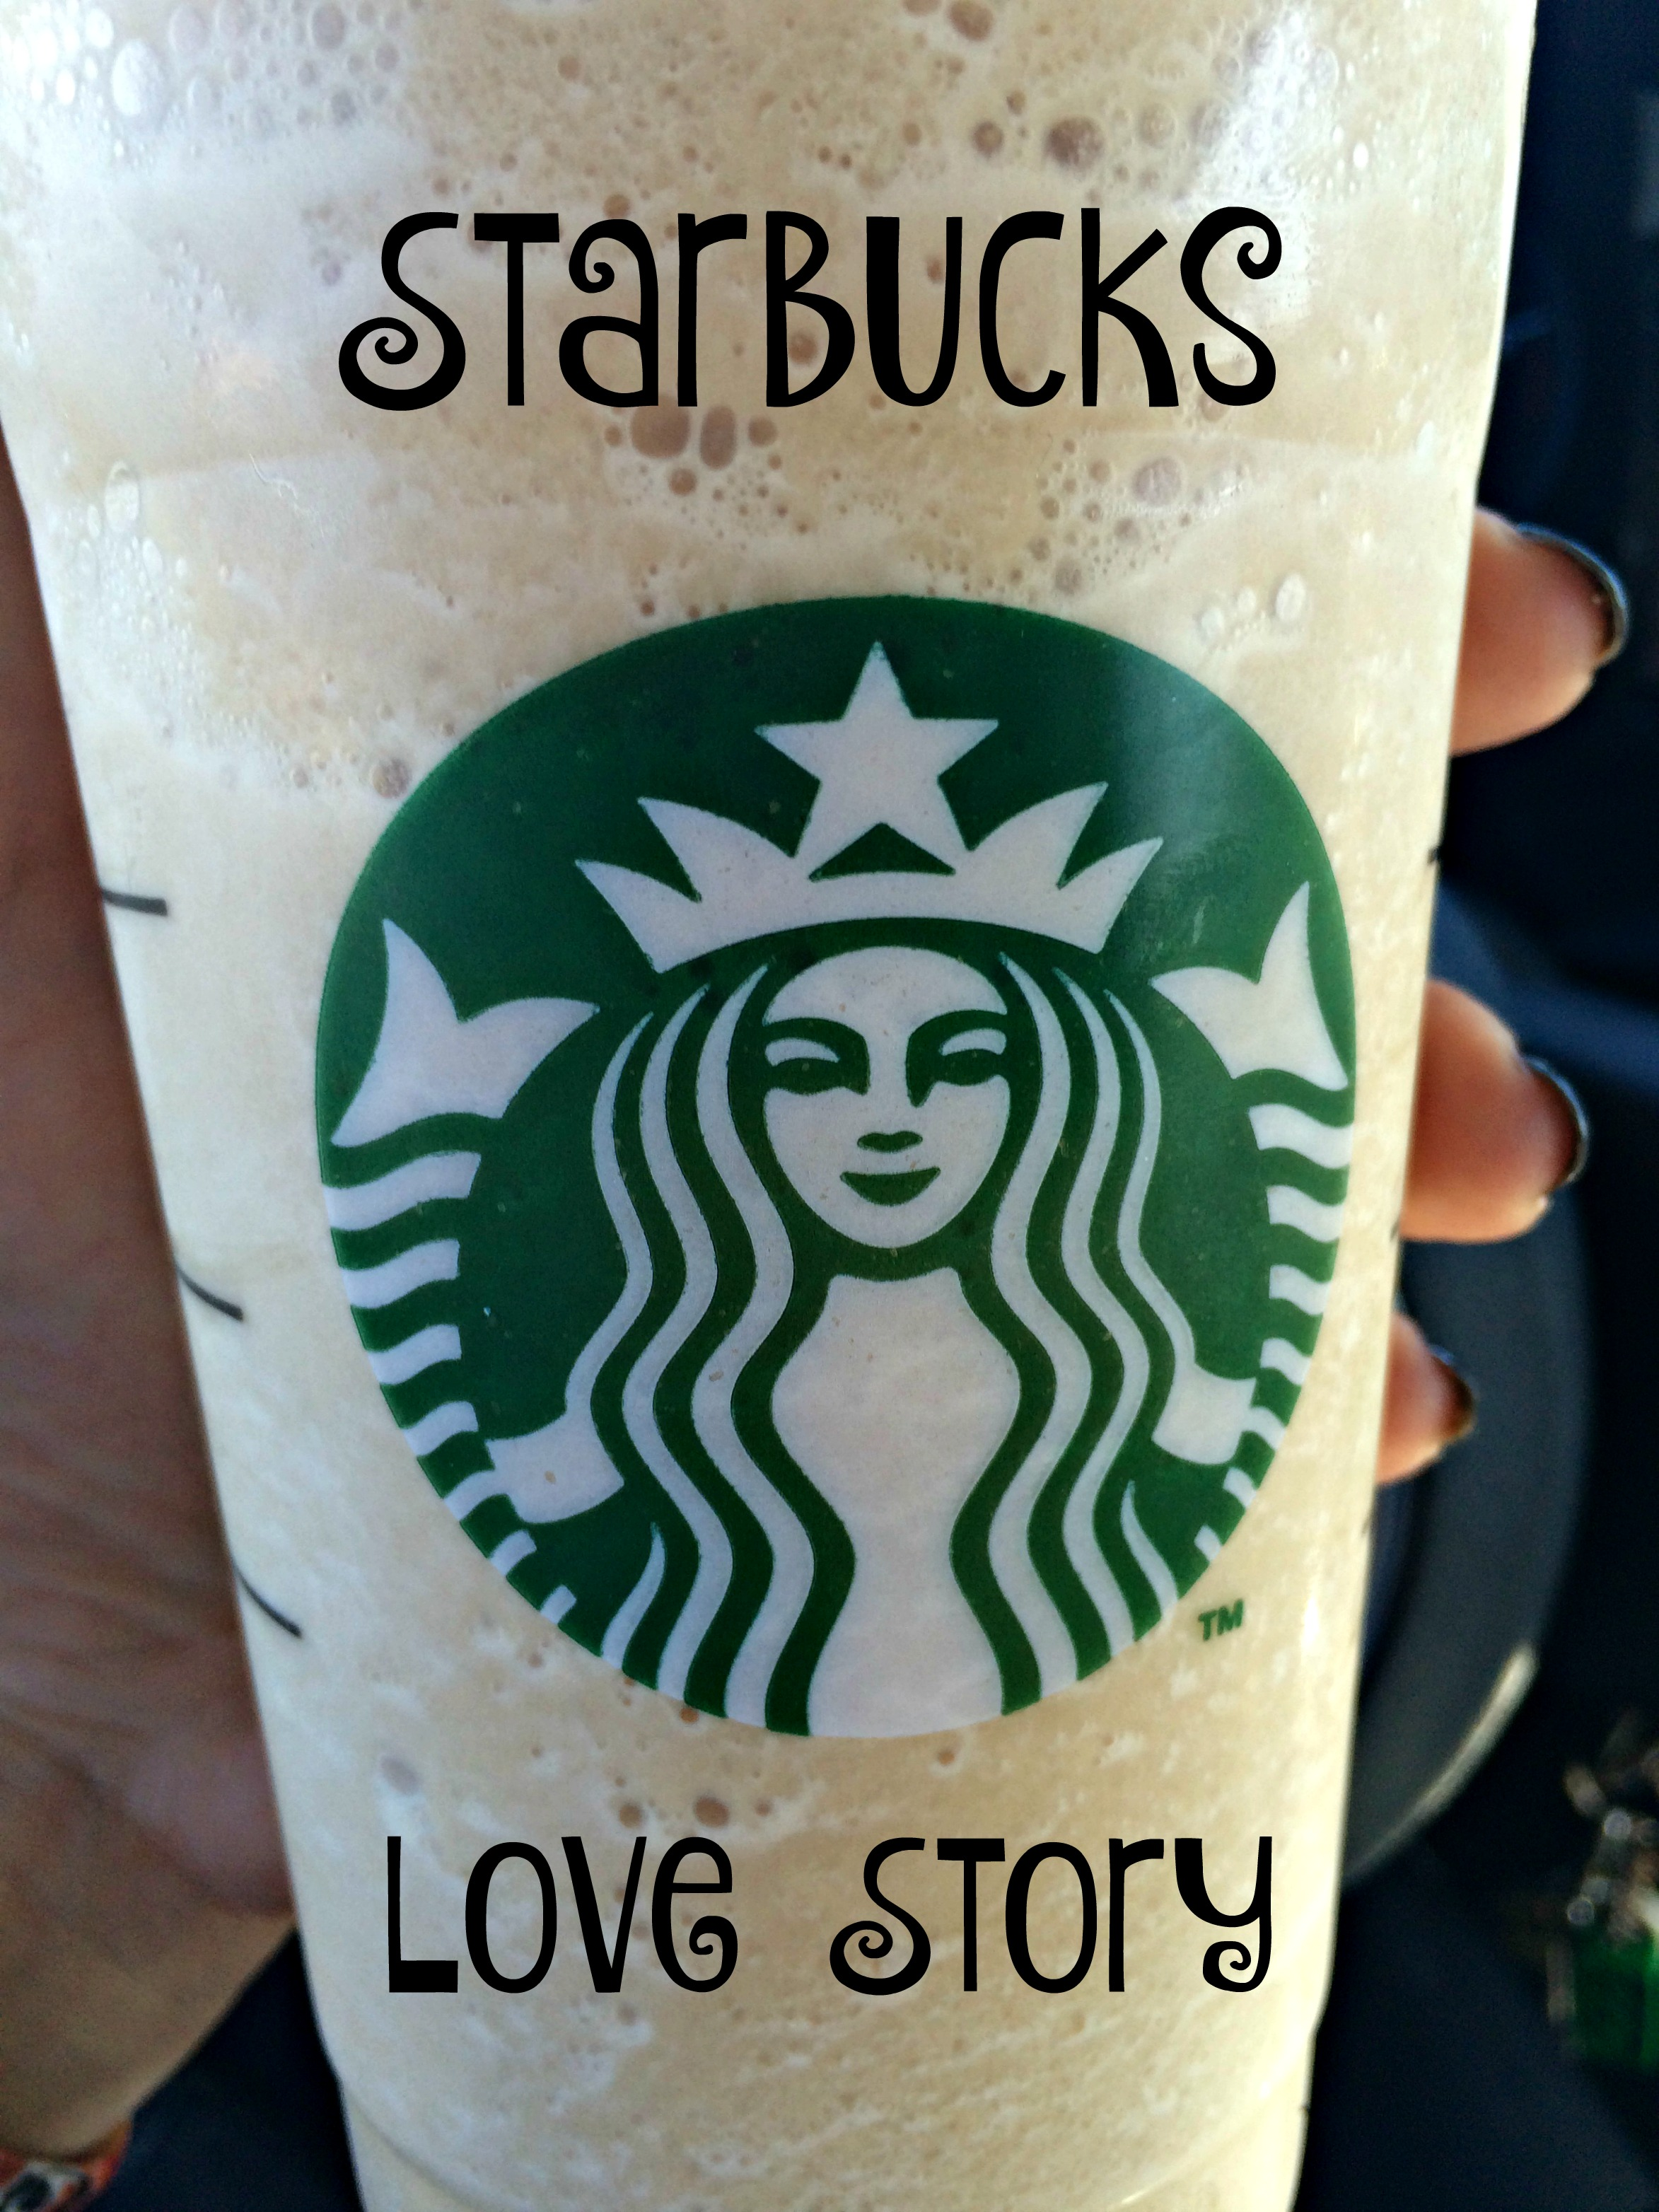 starbucks story essay 3 understanding starbucks starbucks document structure this document is structured in three parts a strong growth story so far b executing on a clear strategy.